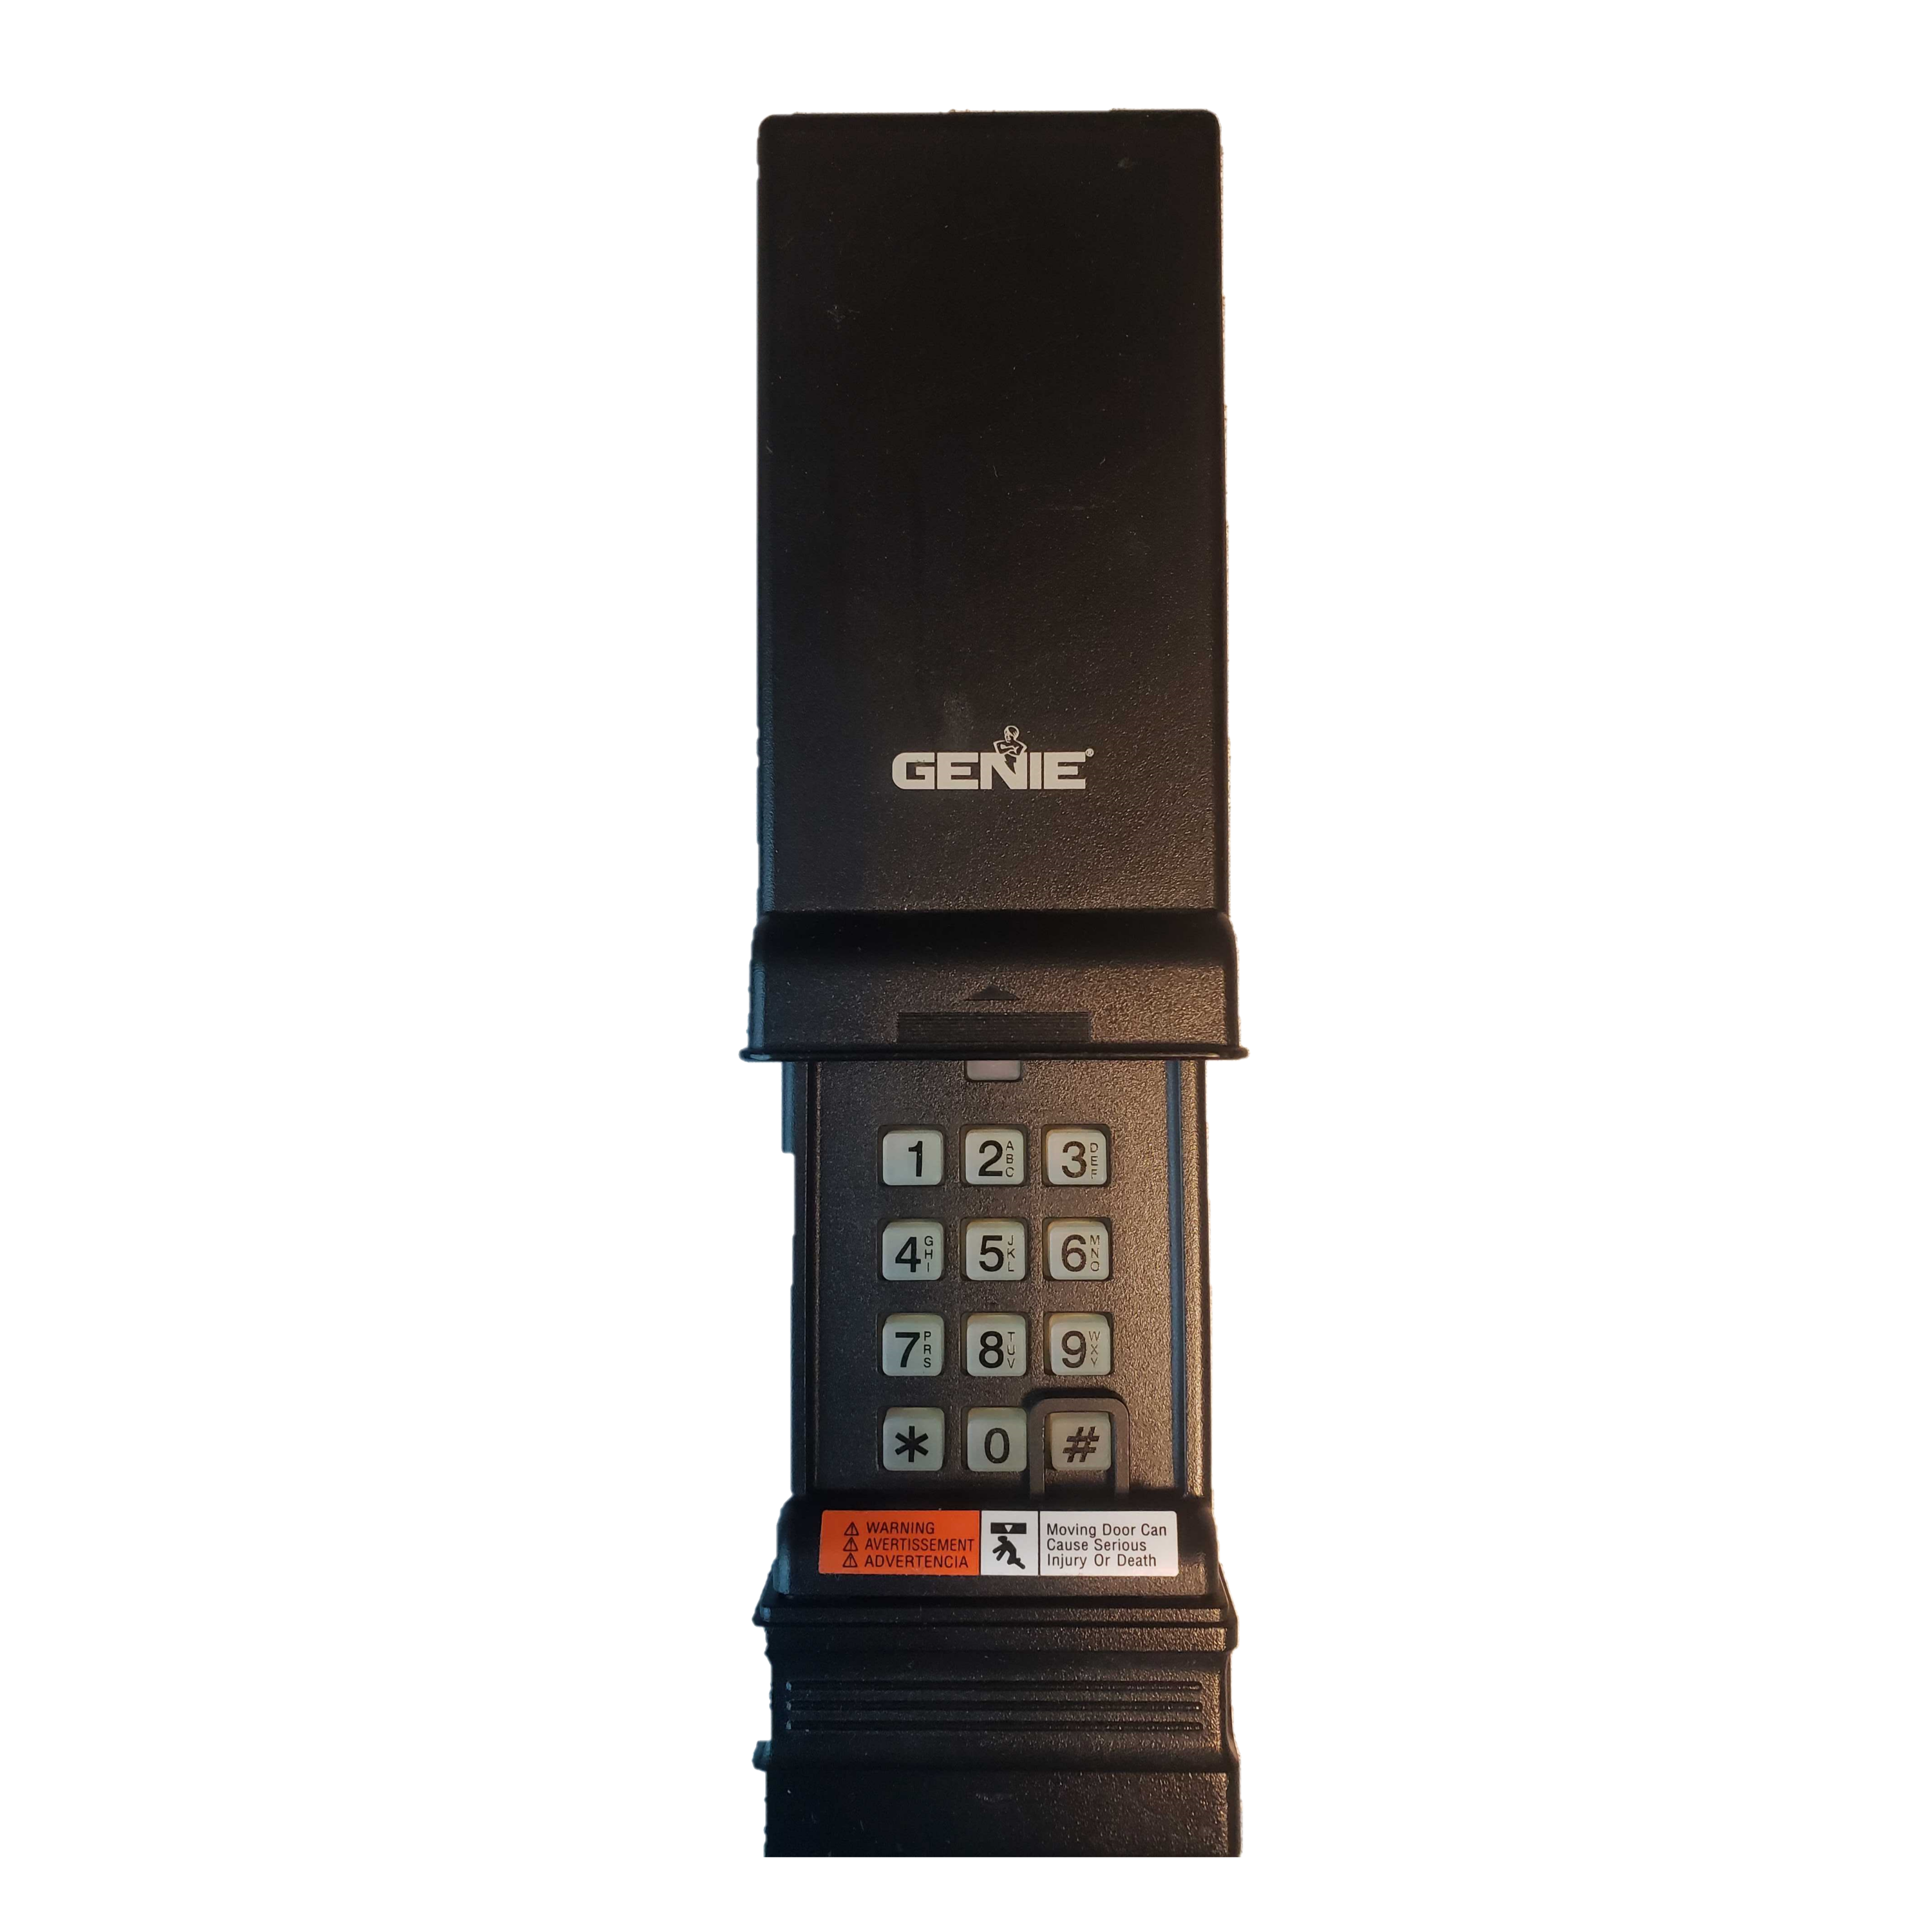 Genie Garage Door Opener Accessory: Keypad